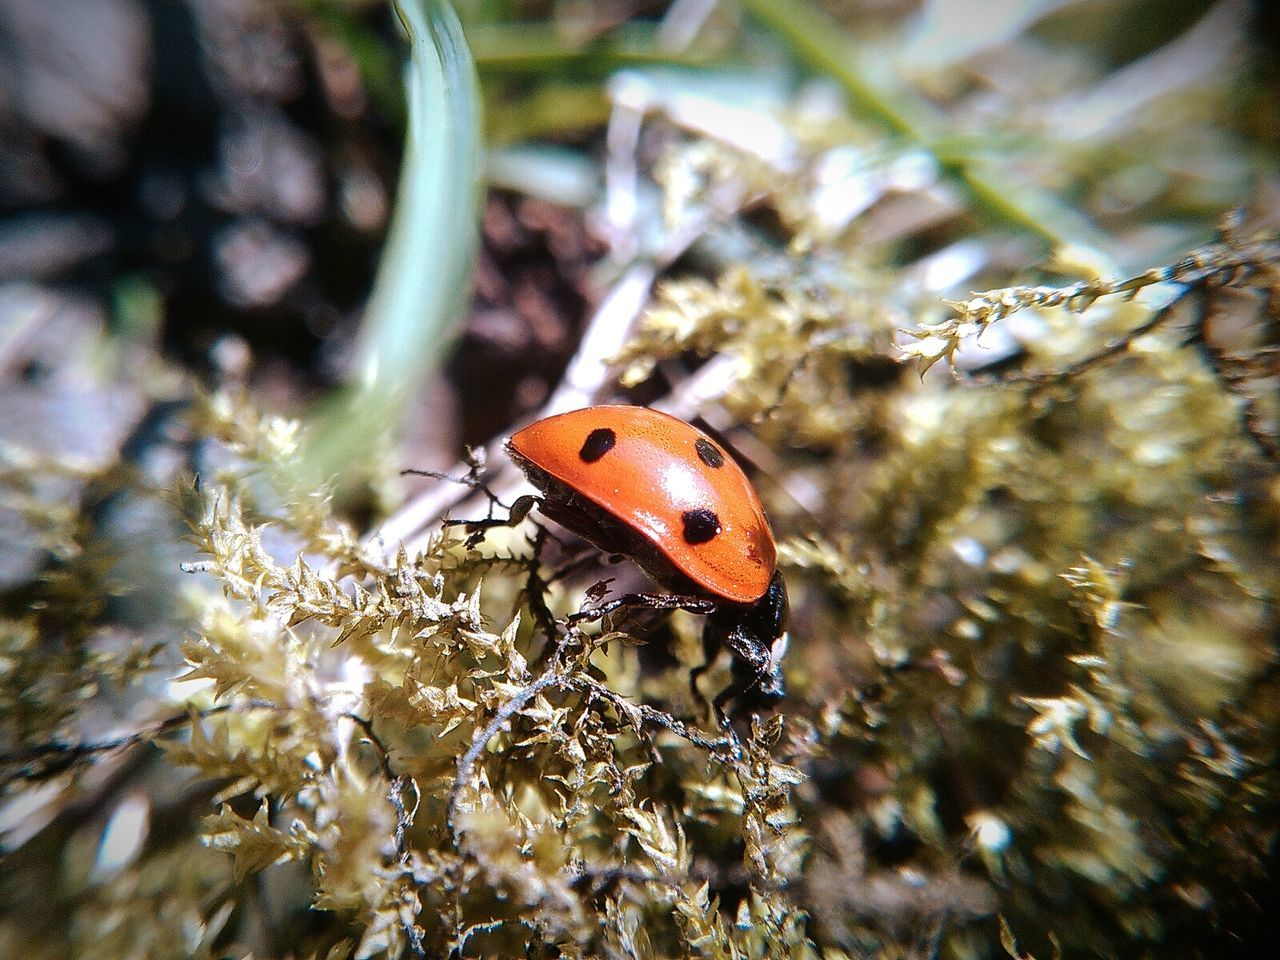 Macro Nature Macro Insect  Ladybug Insect Insects  Insect Photography Macro Macroclique Macro_flower Macro Plants Moss Plants Plant Moss In Macro Moss Close Up Dots Black Dots Macro Insects Macro_bugs Bug Macro Bug Macroshot Macro World Macro Beauty Macro Garden